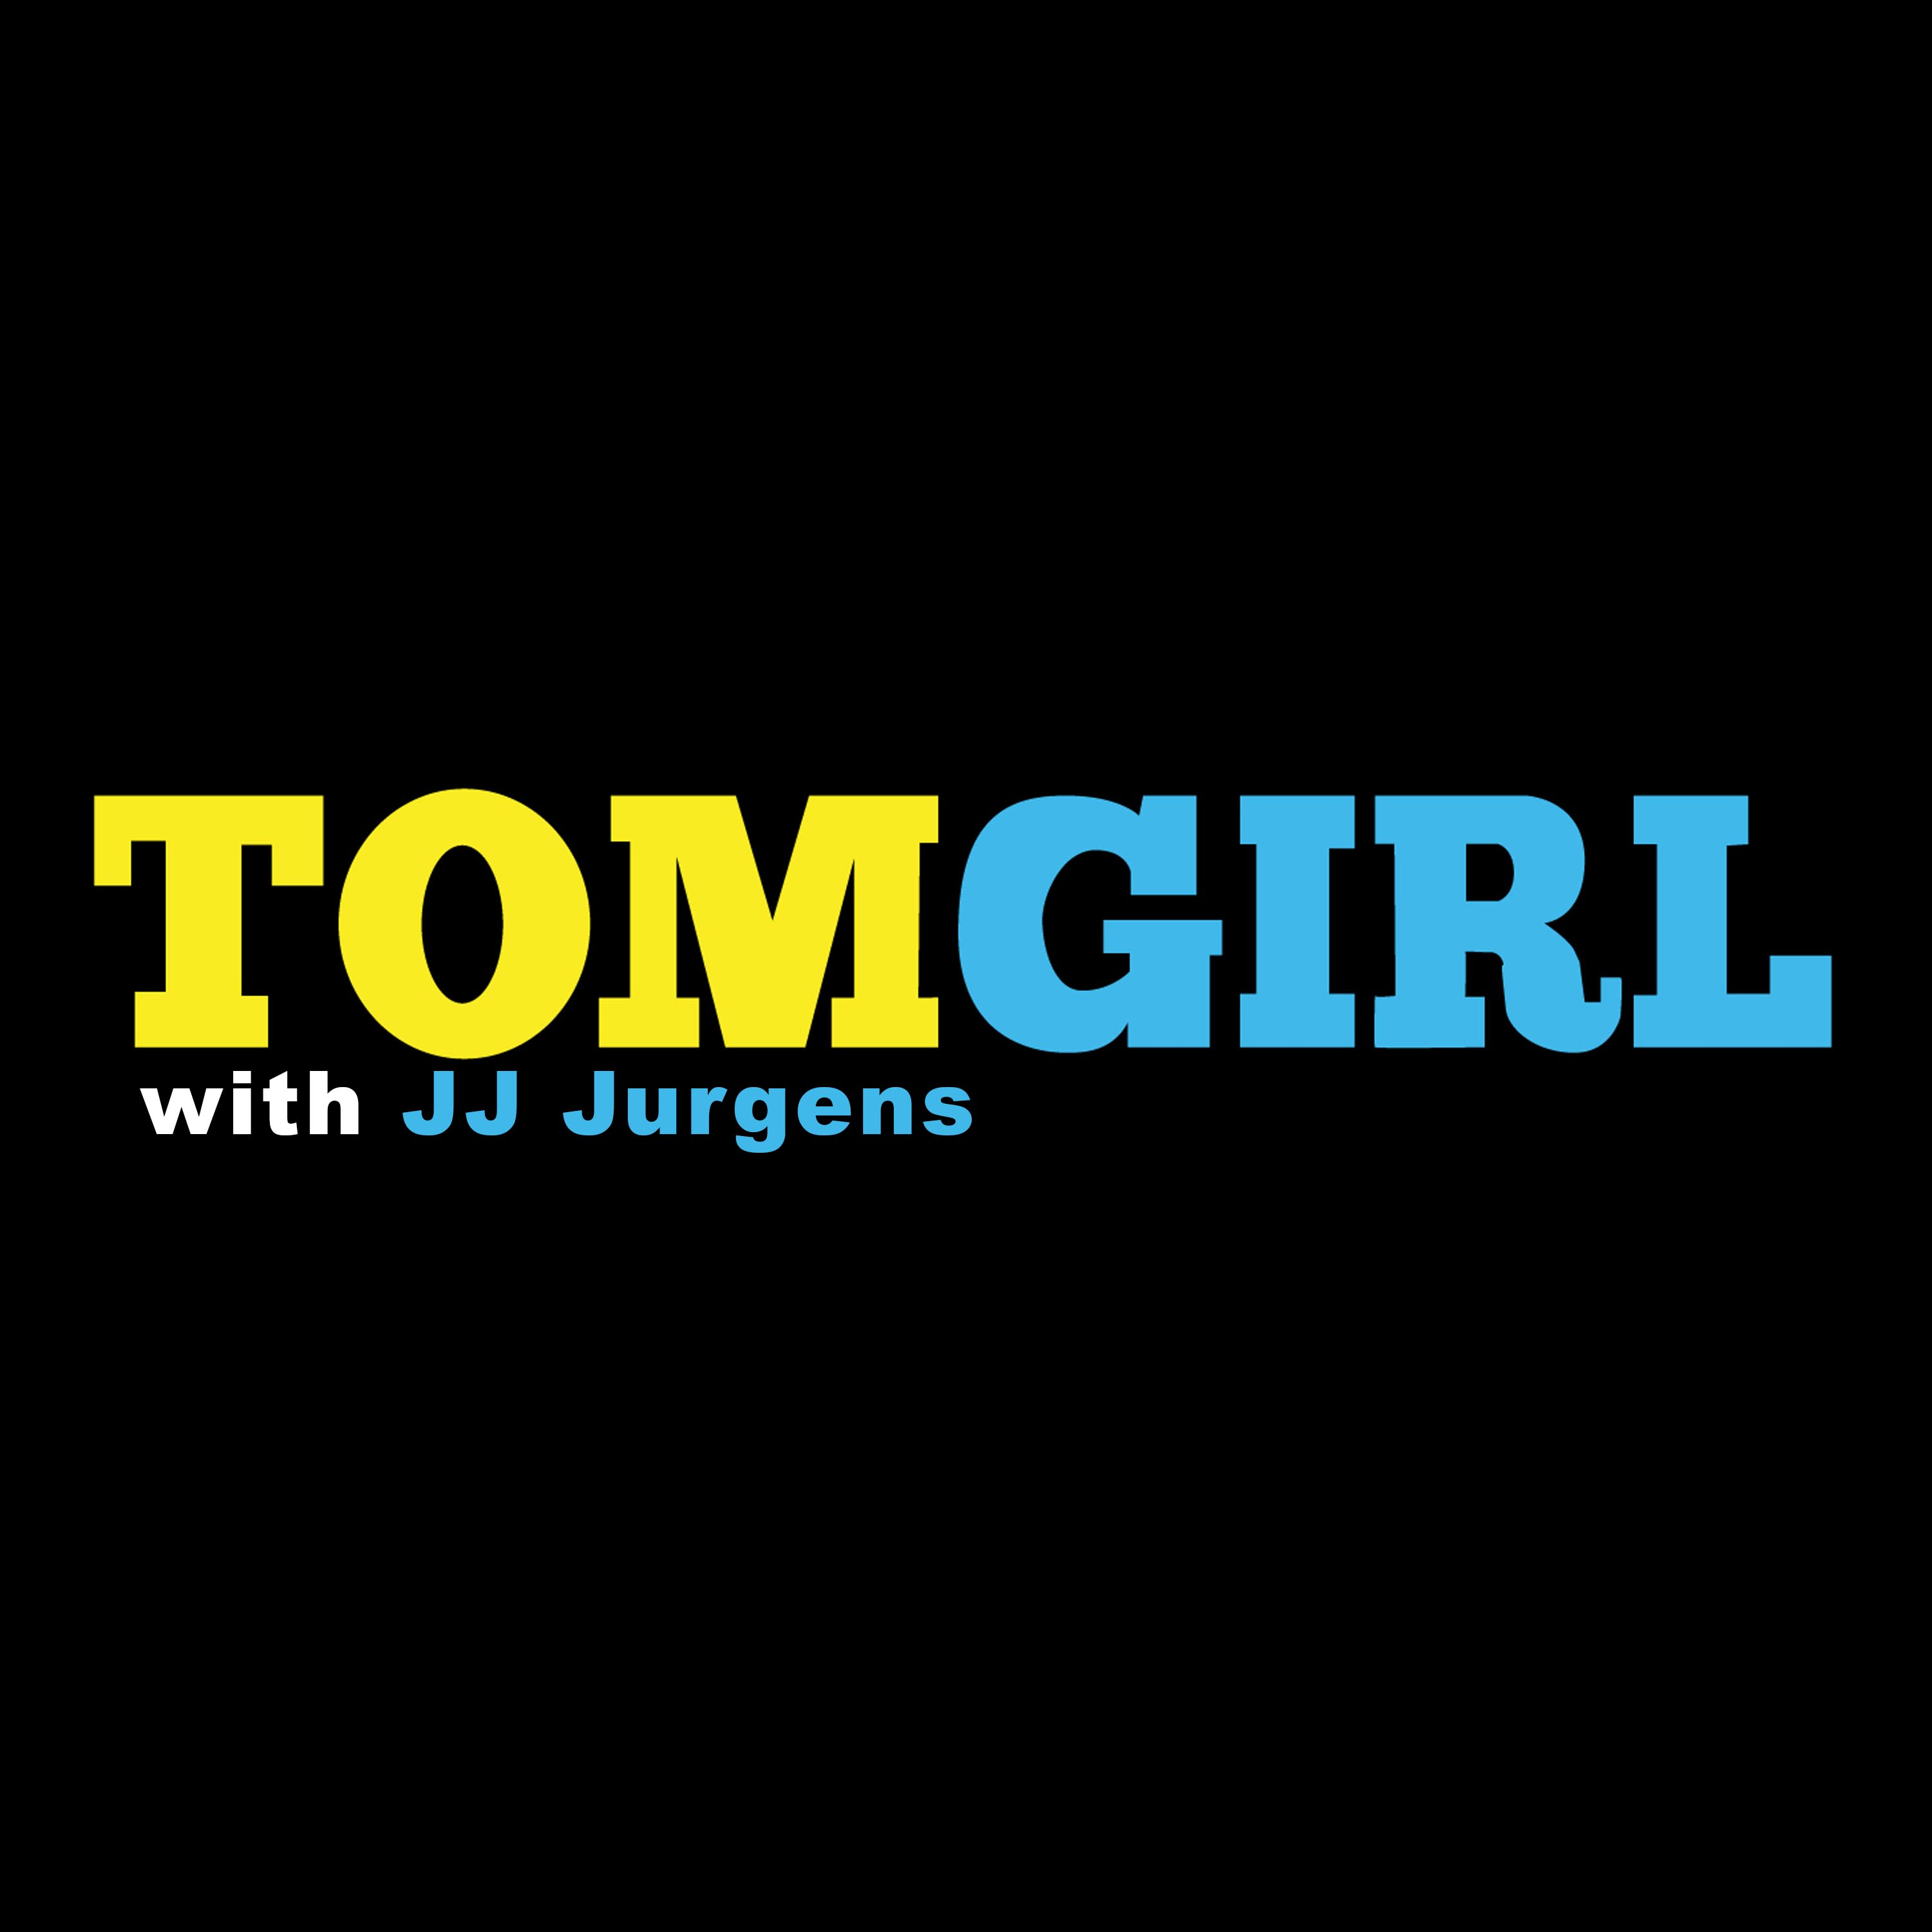 TomGirl with JJ Jurgens